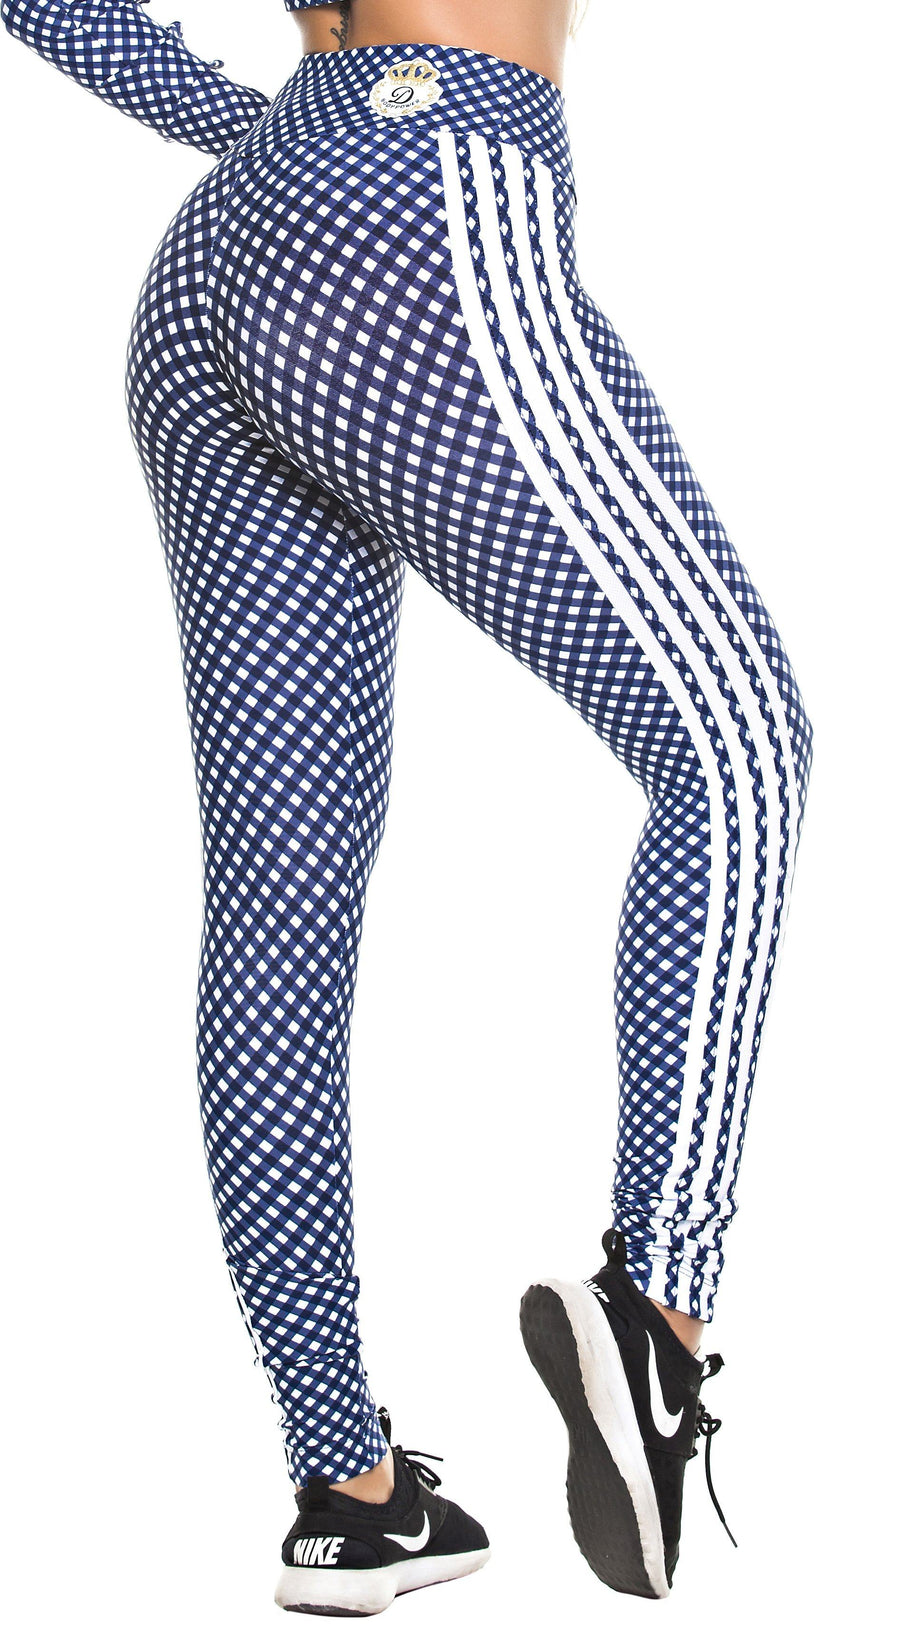 Workout Legging -  High Waist Stripes & Plaid Navy/White